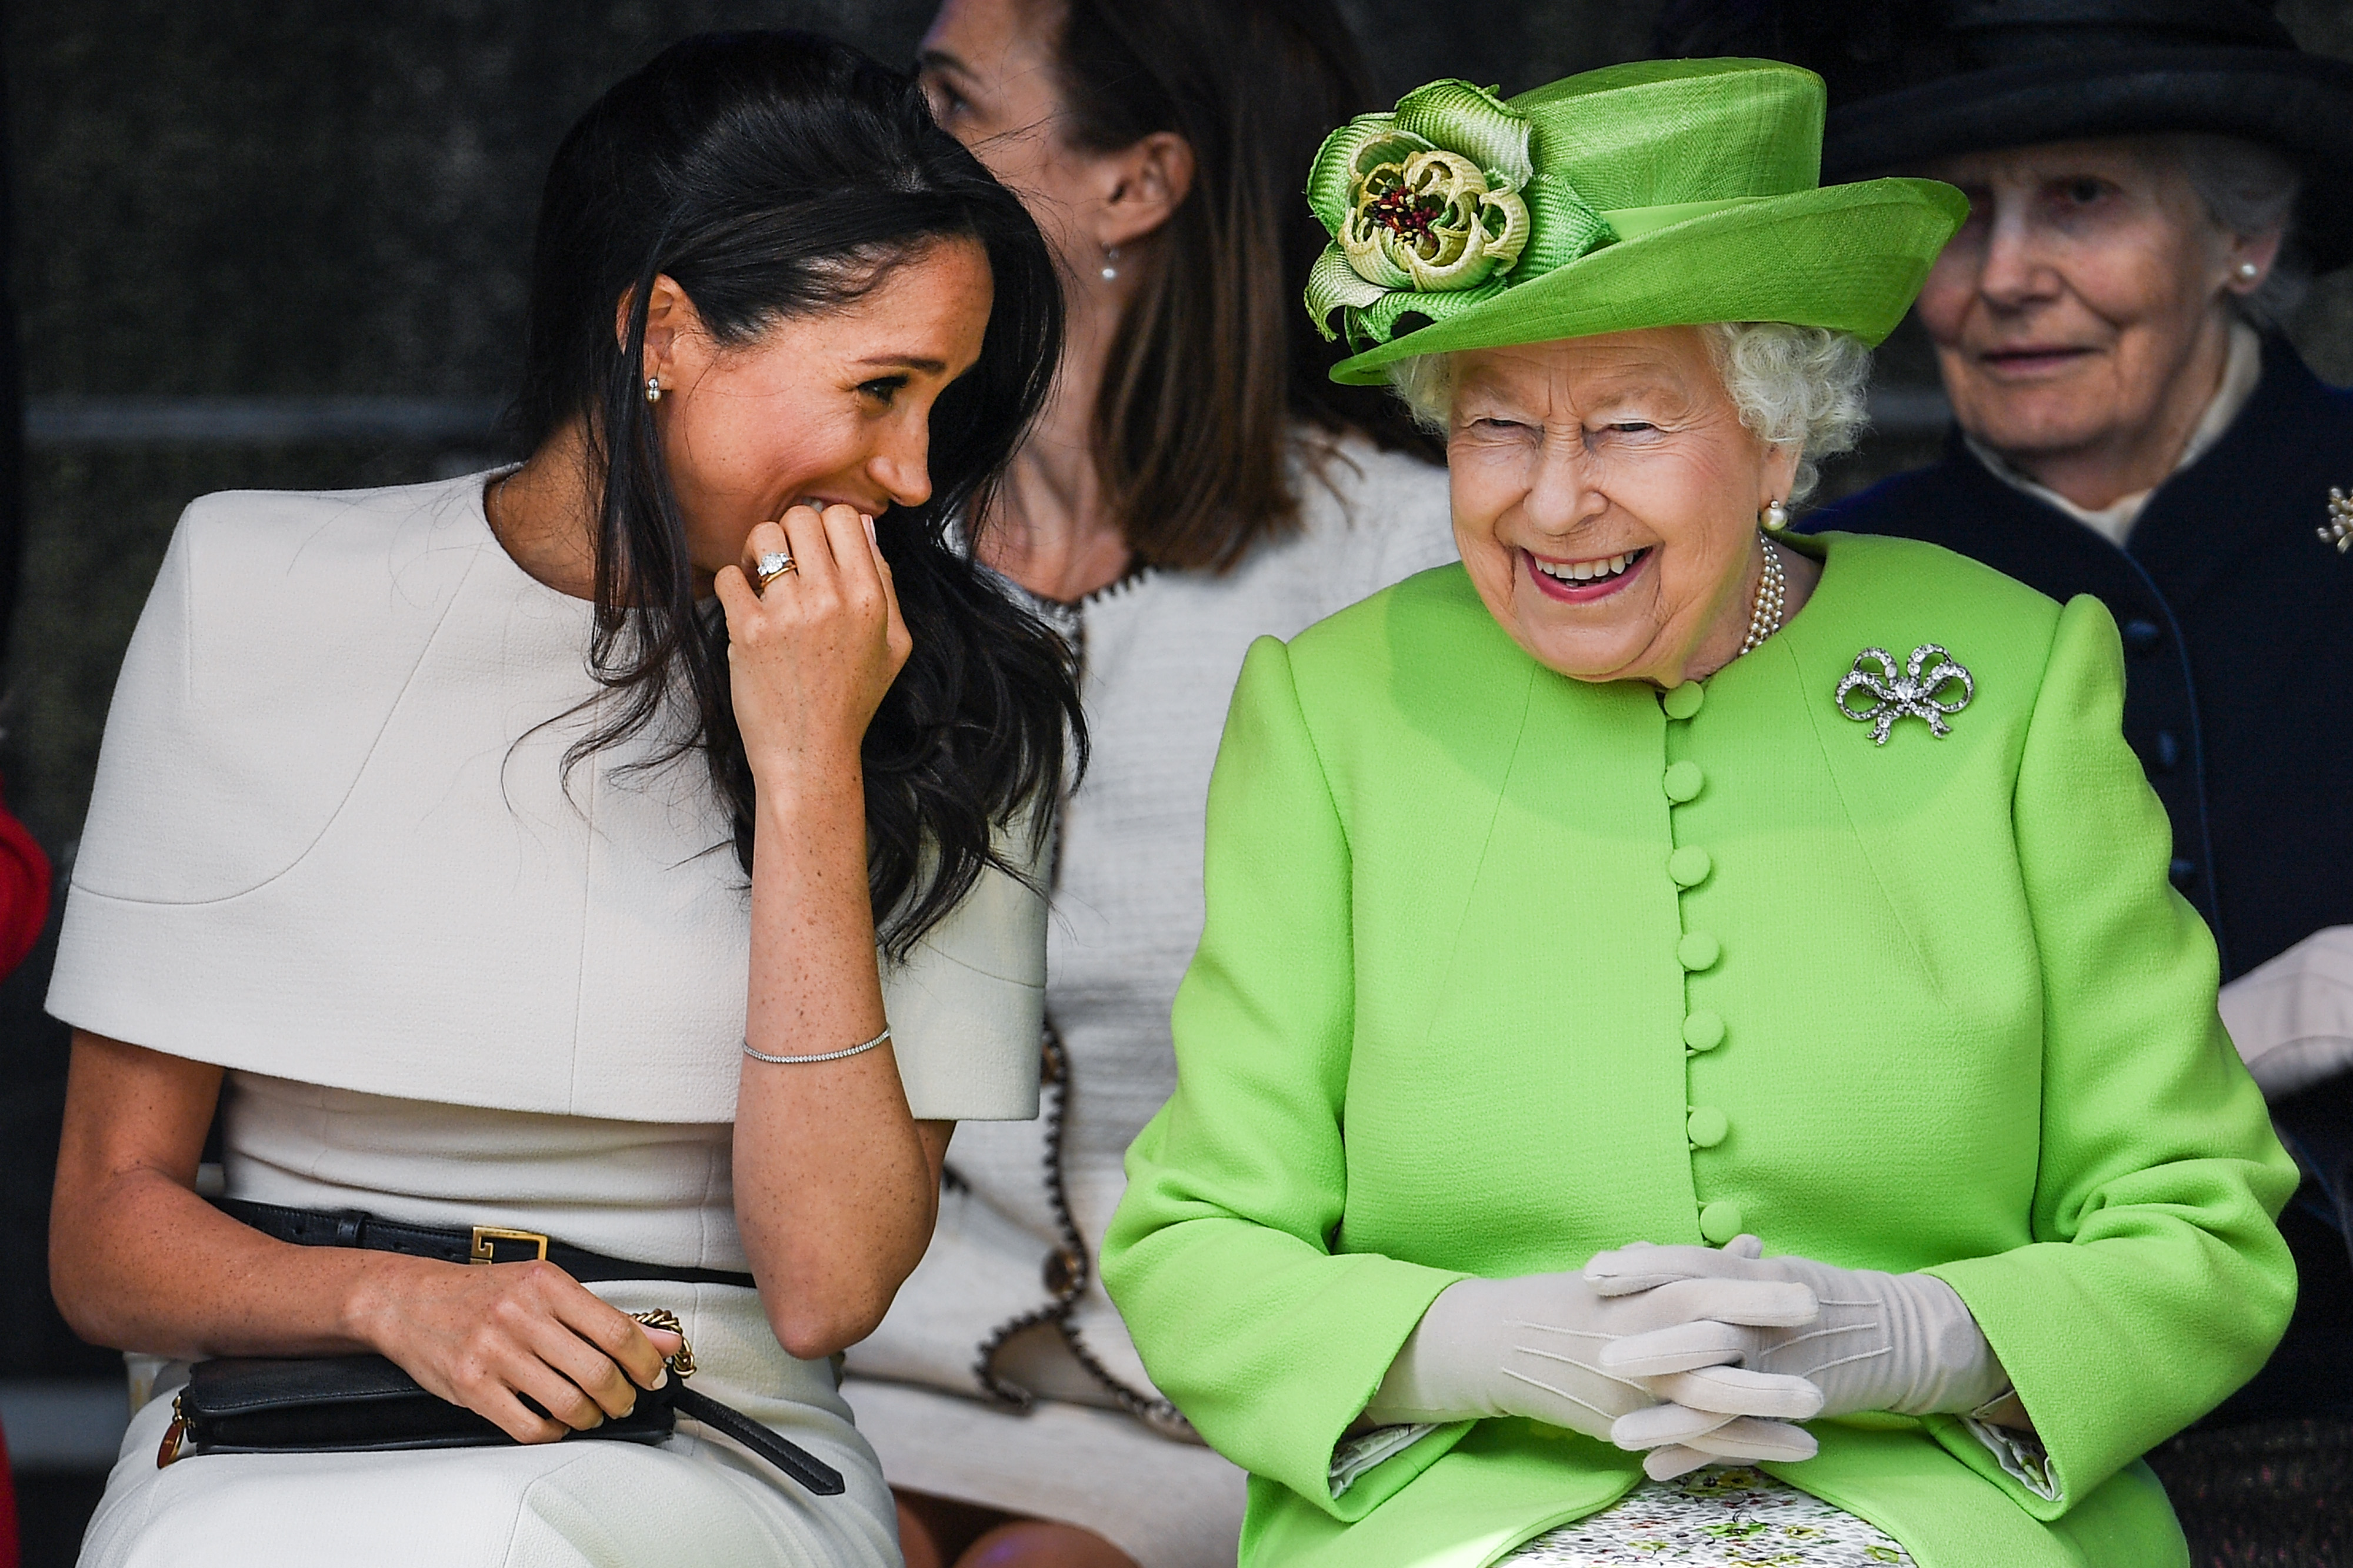 Queen Elizabeth II sitts and laughs with Meghan, Duchess of Sussex during a ceremony to open the new Mersey Gateway Bridge on June 14, 2018 in the town of Widnes in Halton, Cheshire, England. Meghan Markle married Prince Harry last month to become The Duchess of Sussex and this is her first engagement with the Queen. During the visit the pair will open a road bridge in Widnes and visit The Storyhouse and Town Hall in Chester. (Photo by Jeff J Mitchell/Getty Images)